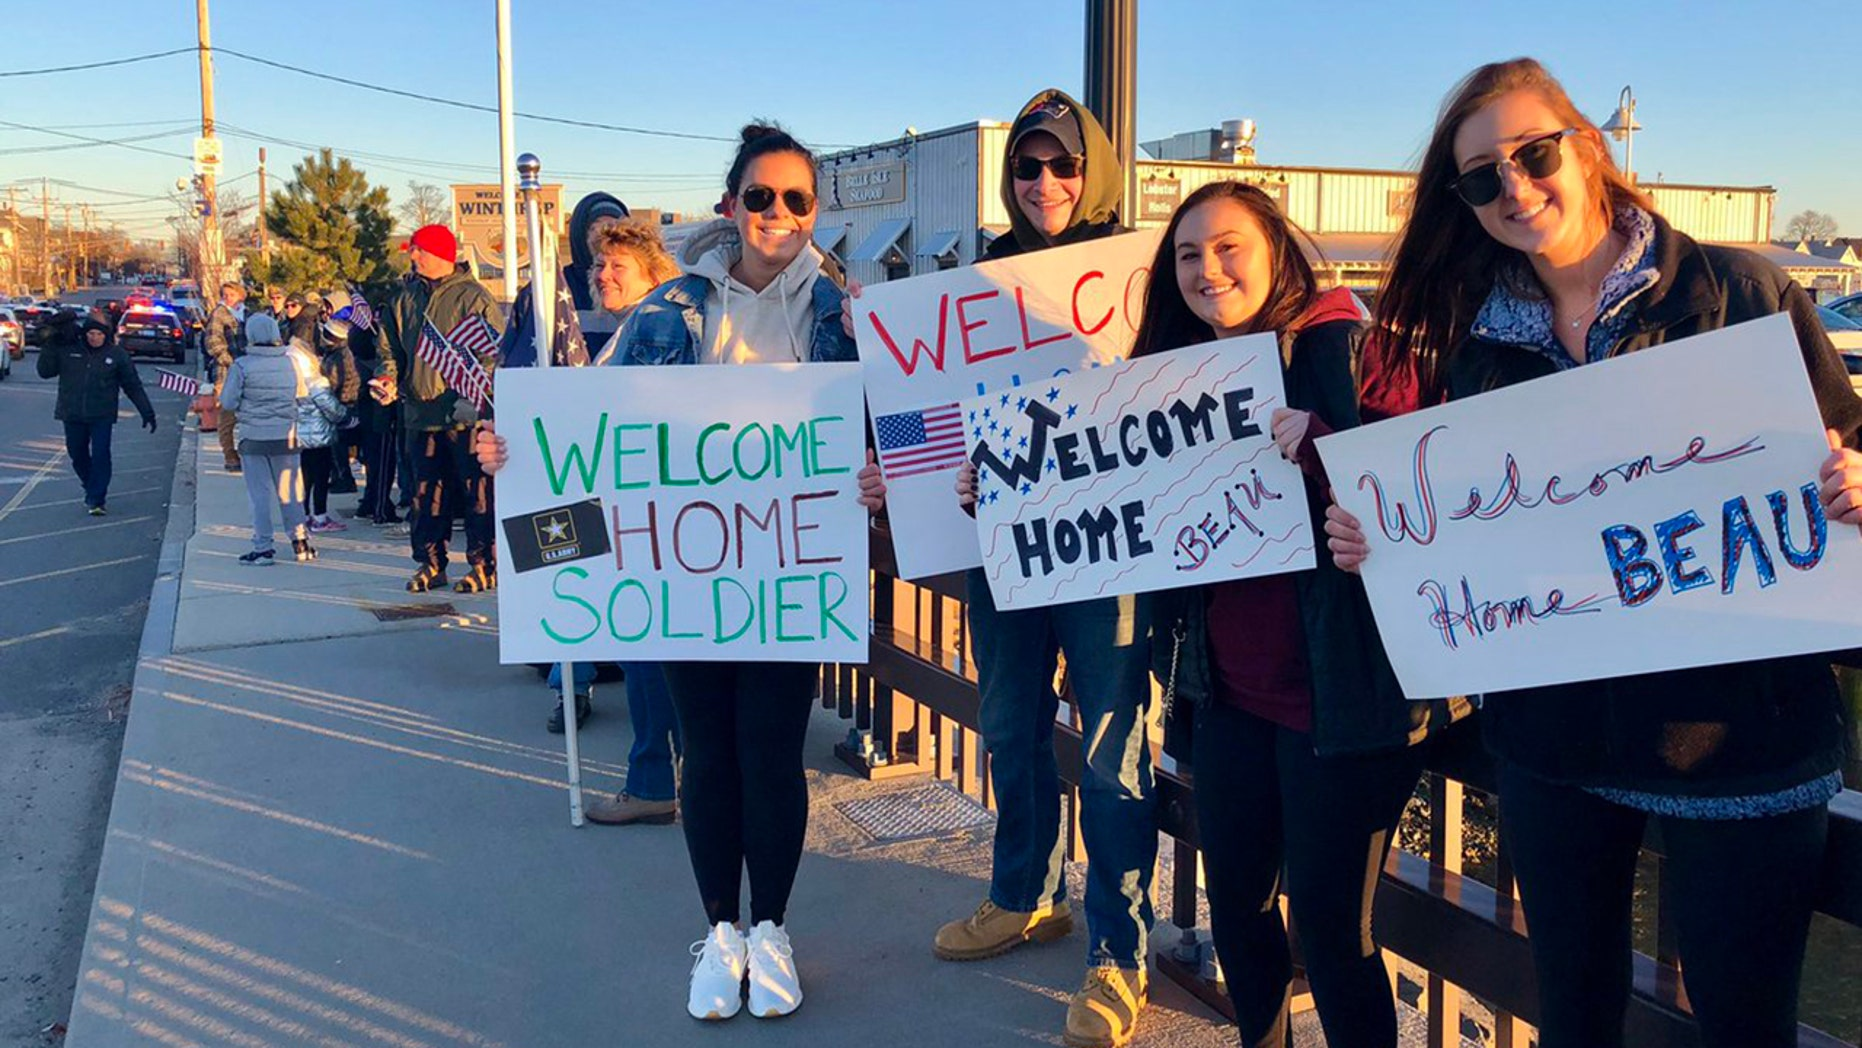 Dozens lineda bridge into Winthrop, Mass., Saturday to surprise U.S. Armysoldier Beau Schlichting who returned home from a nine-month deployment in Afghanistan.